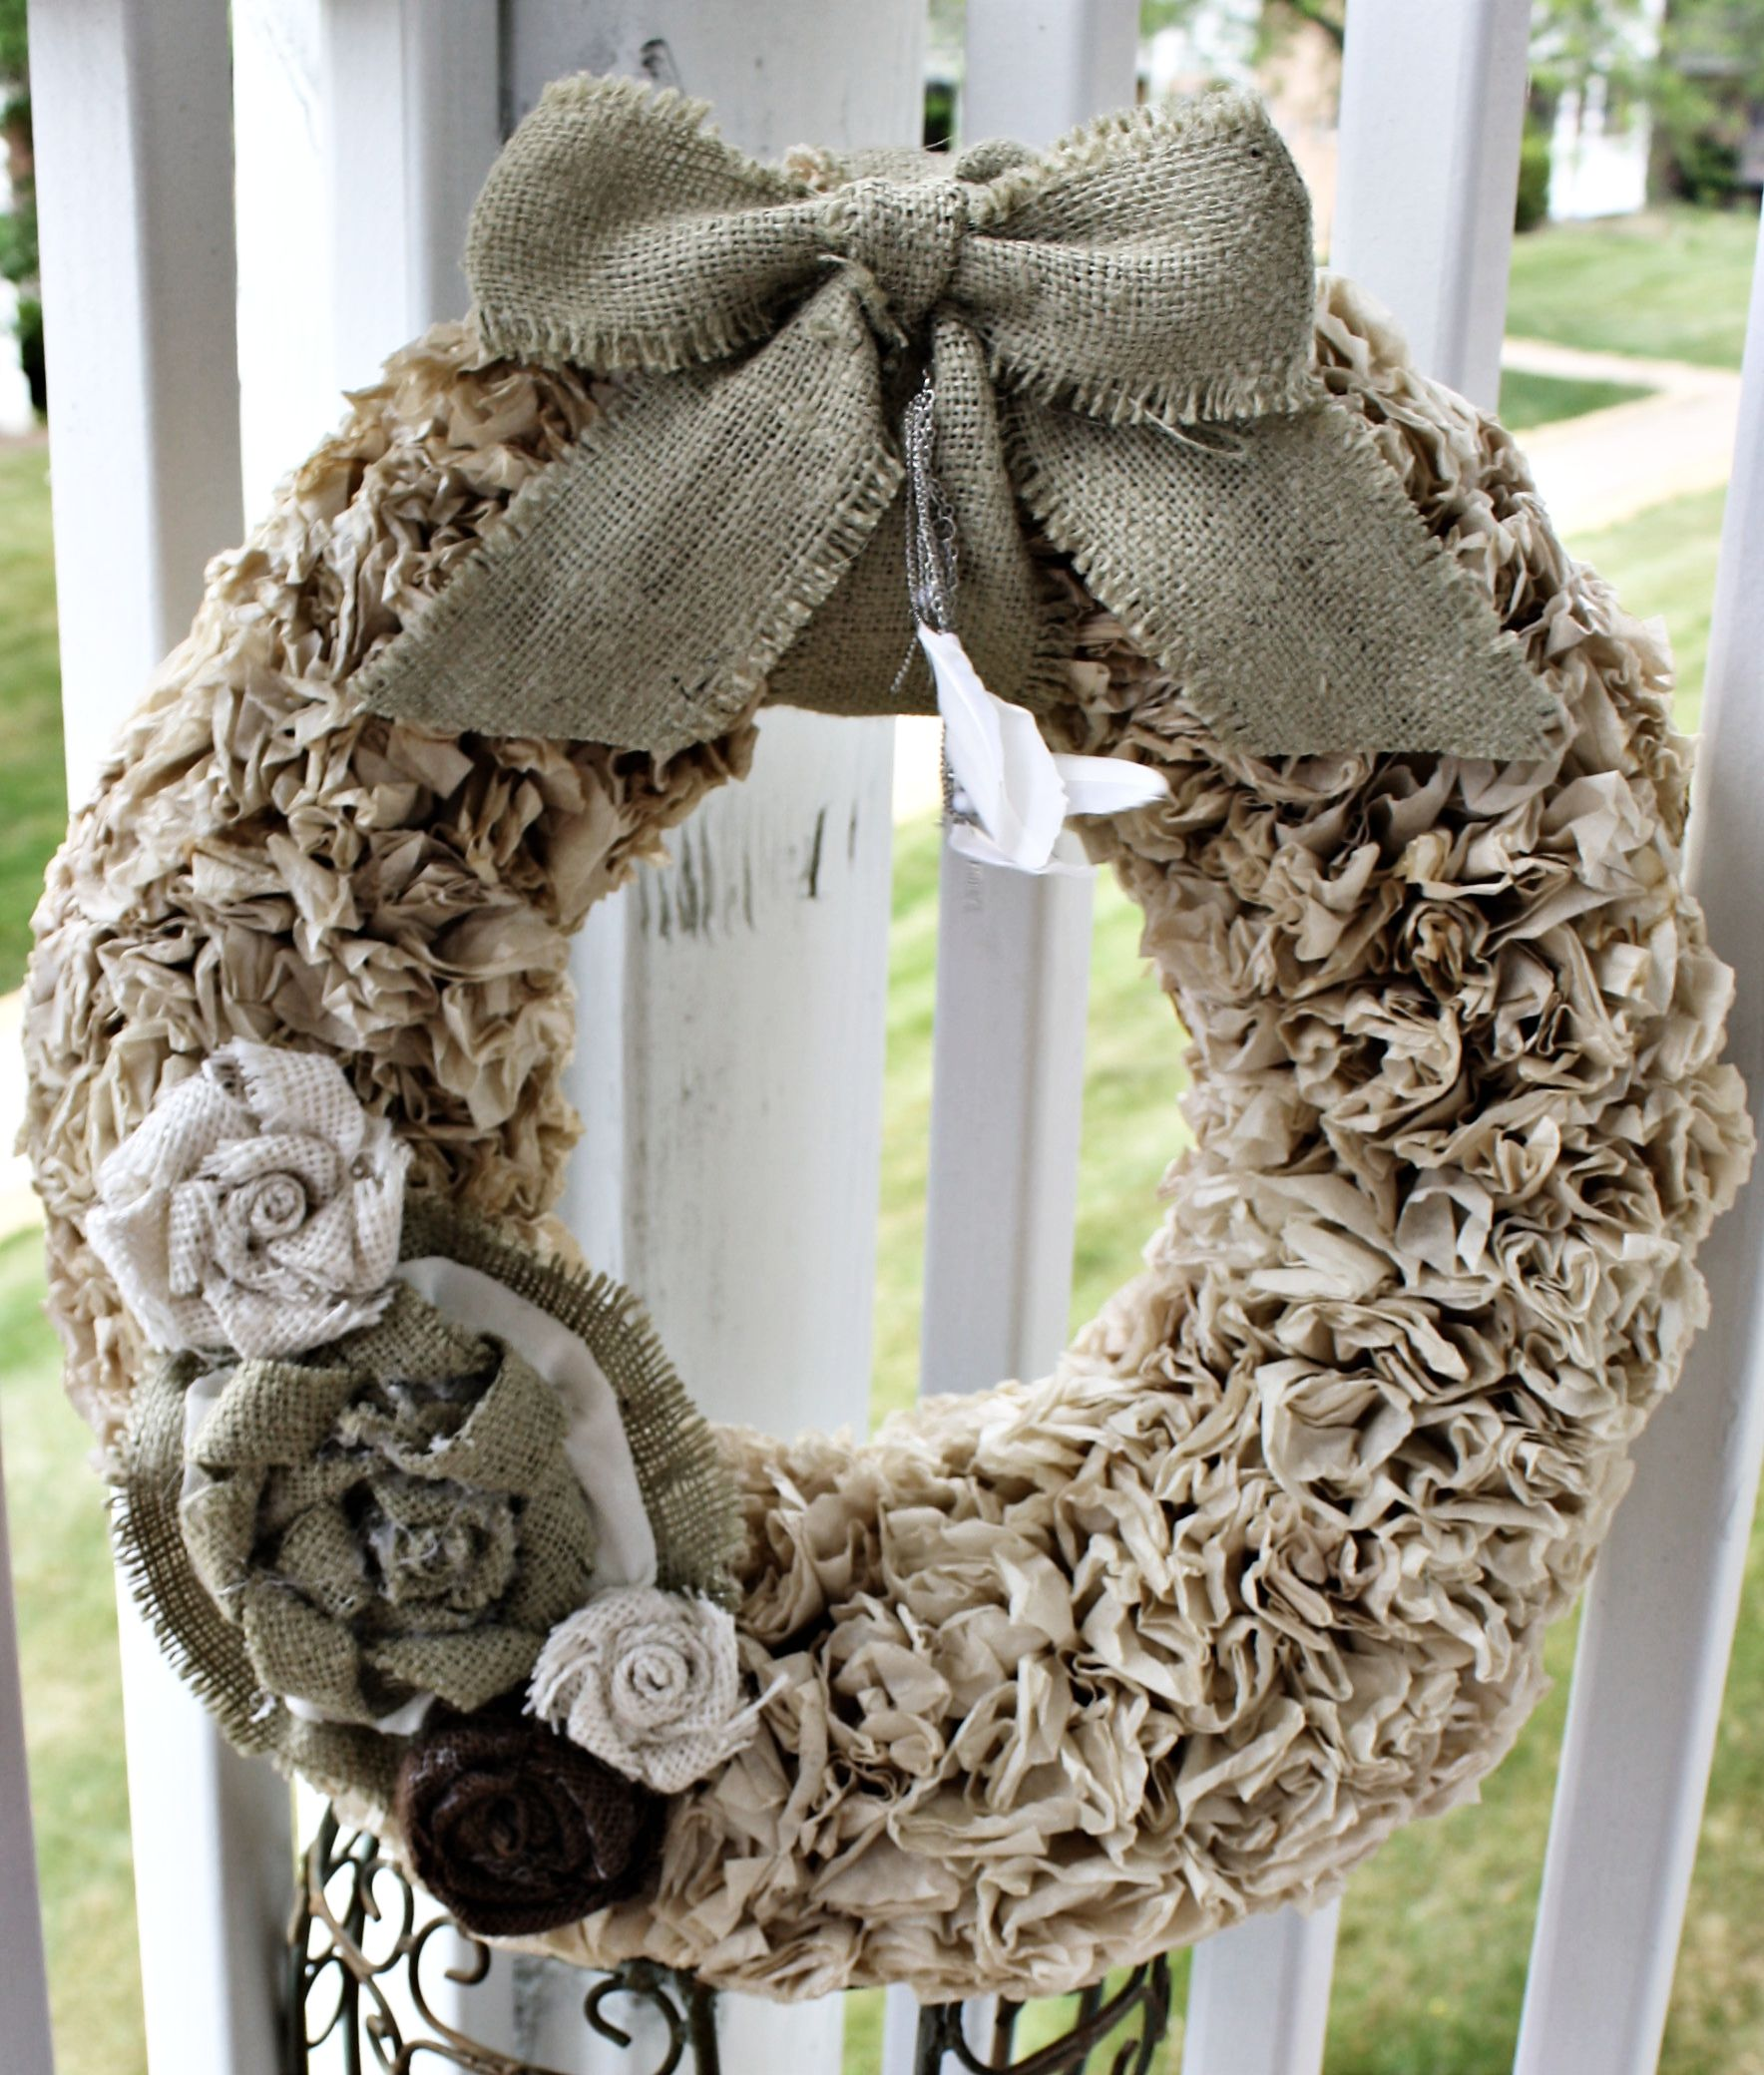 Project #1: Tea-stained coffee filter wreath with feathers, burlap bow and flowers